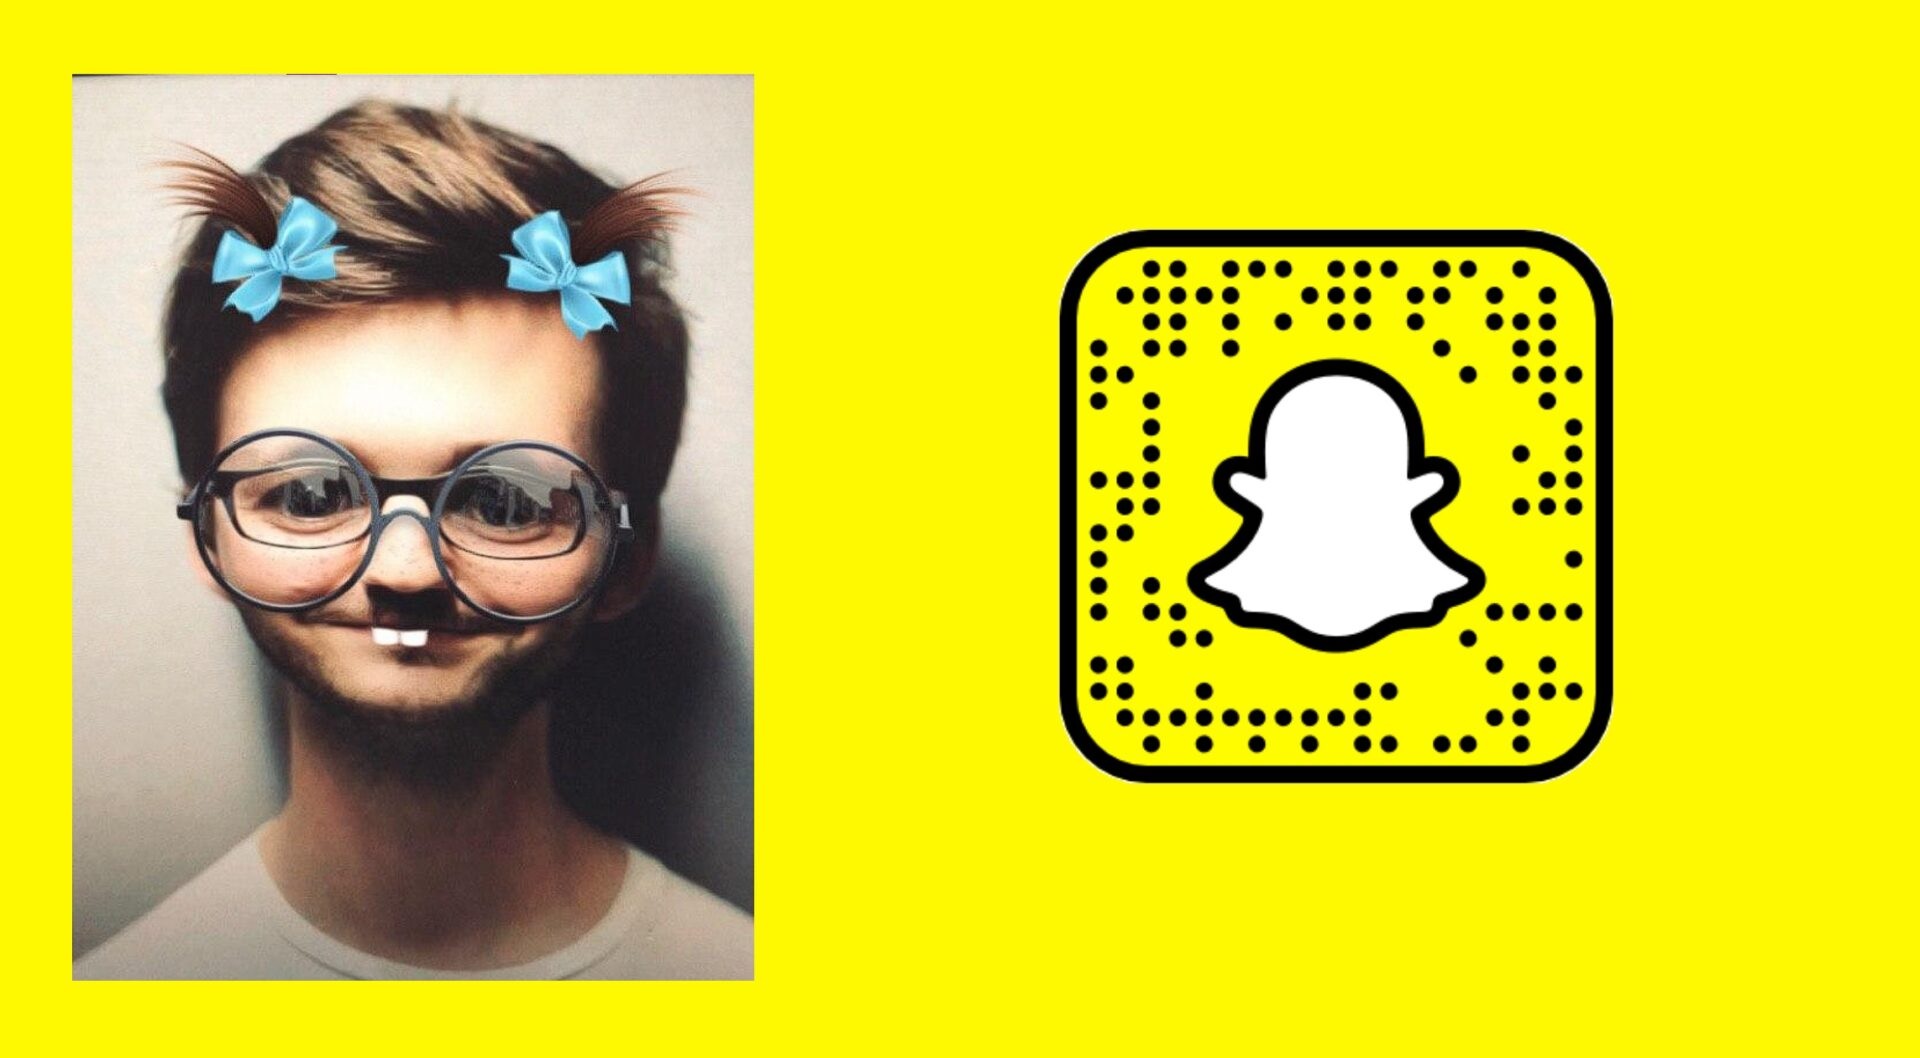 Cutest Snapchat filters - Cute pigtails